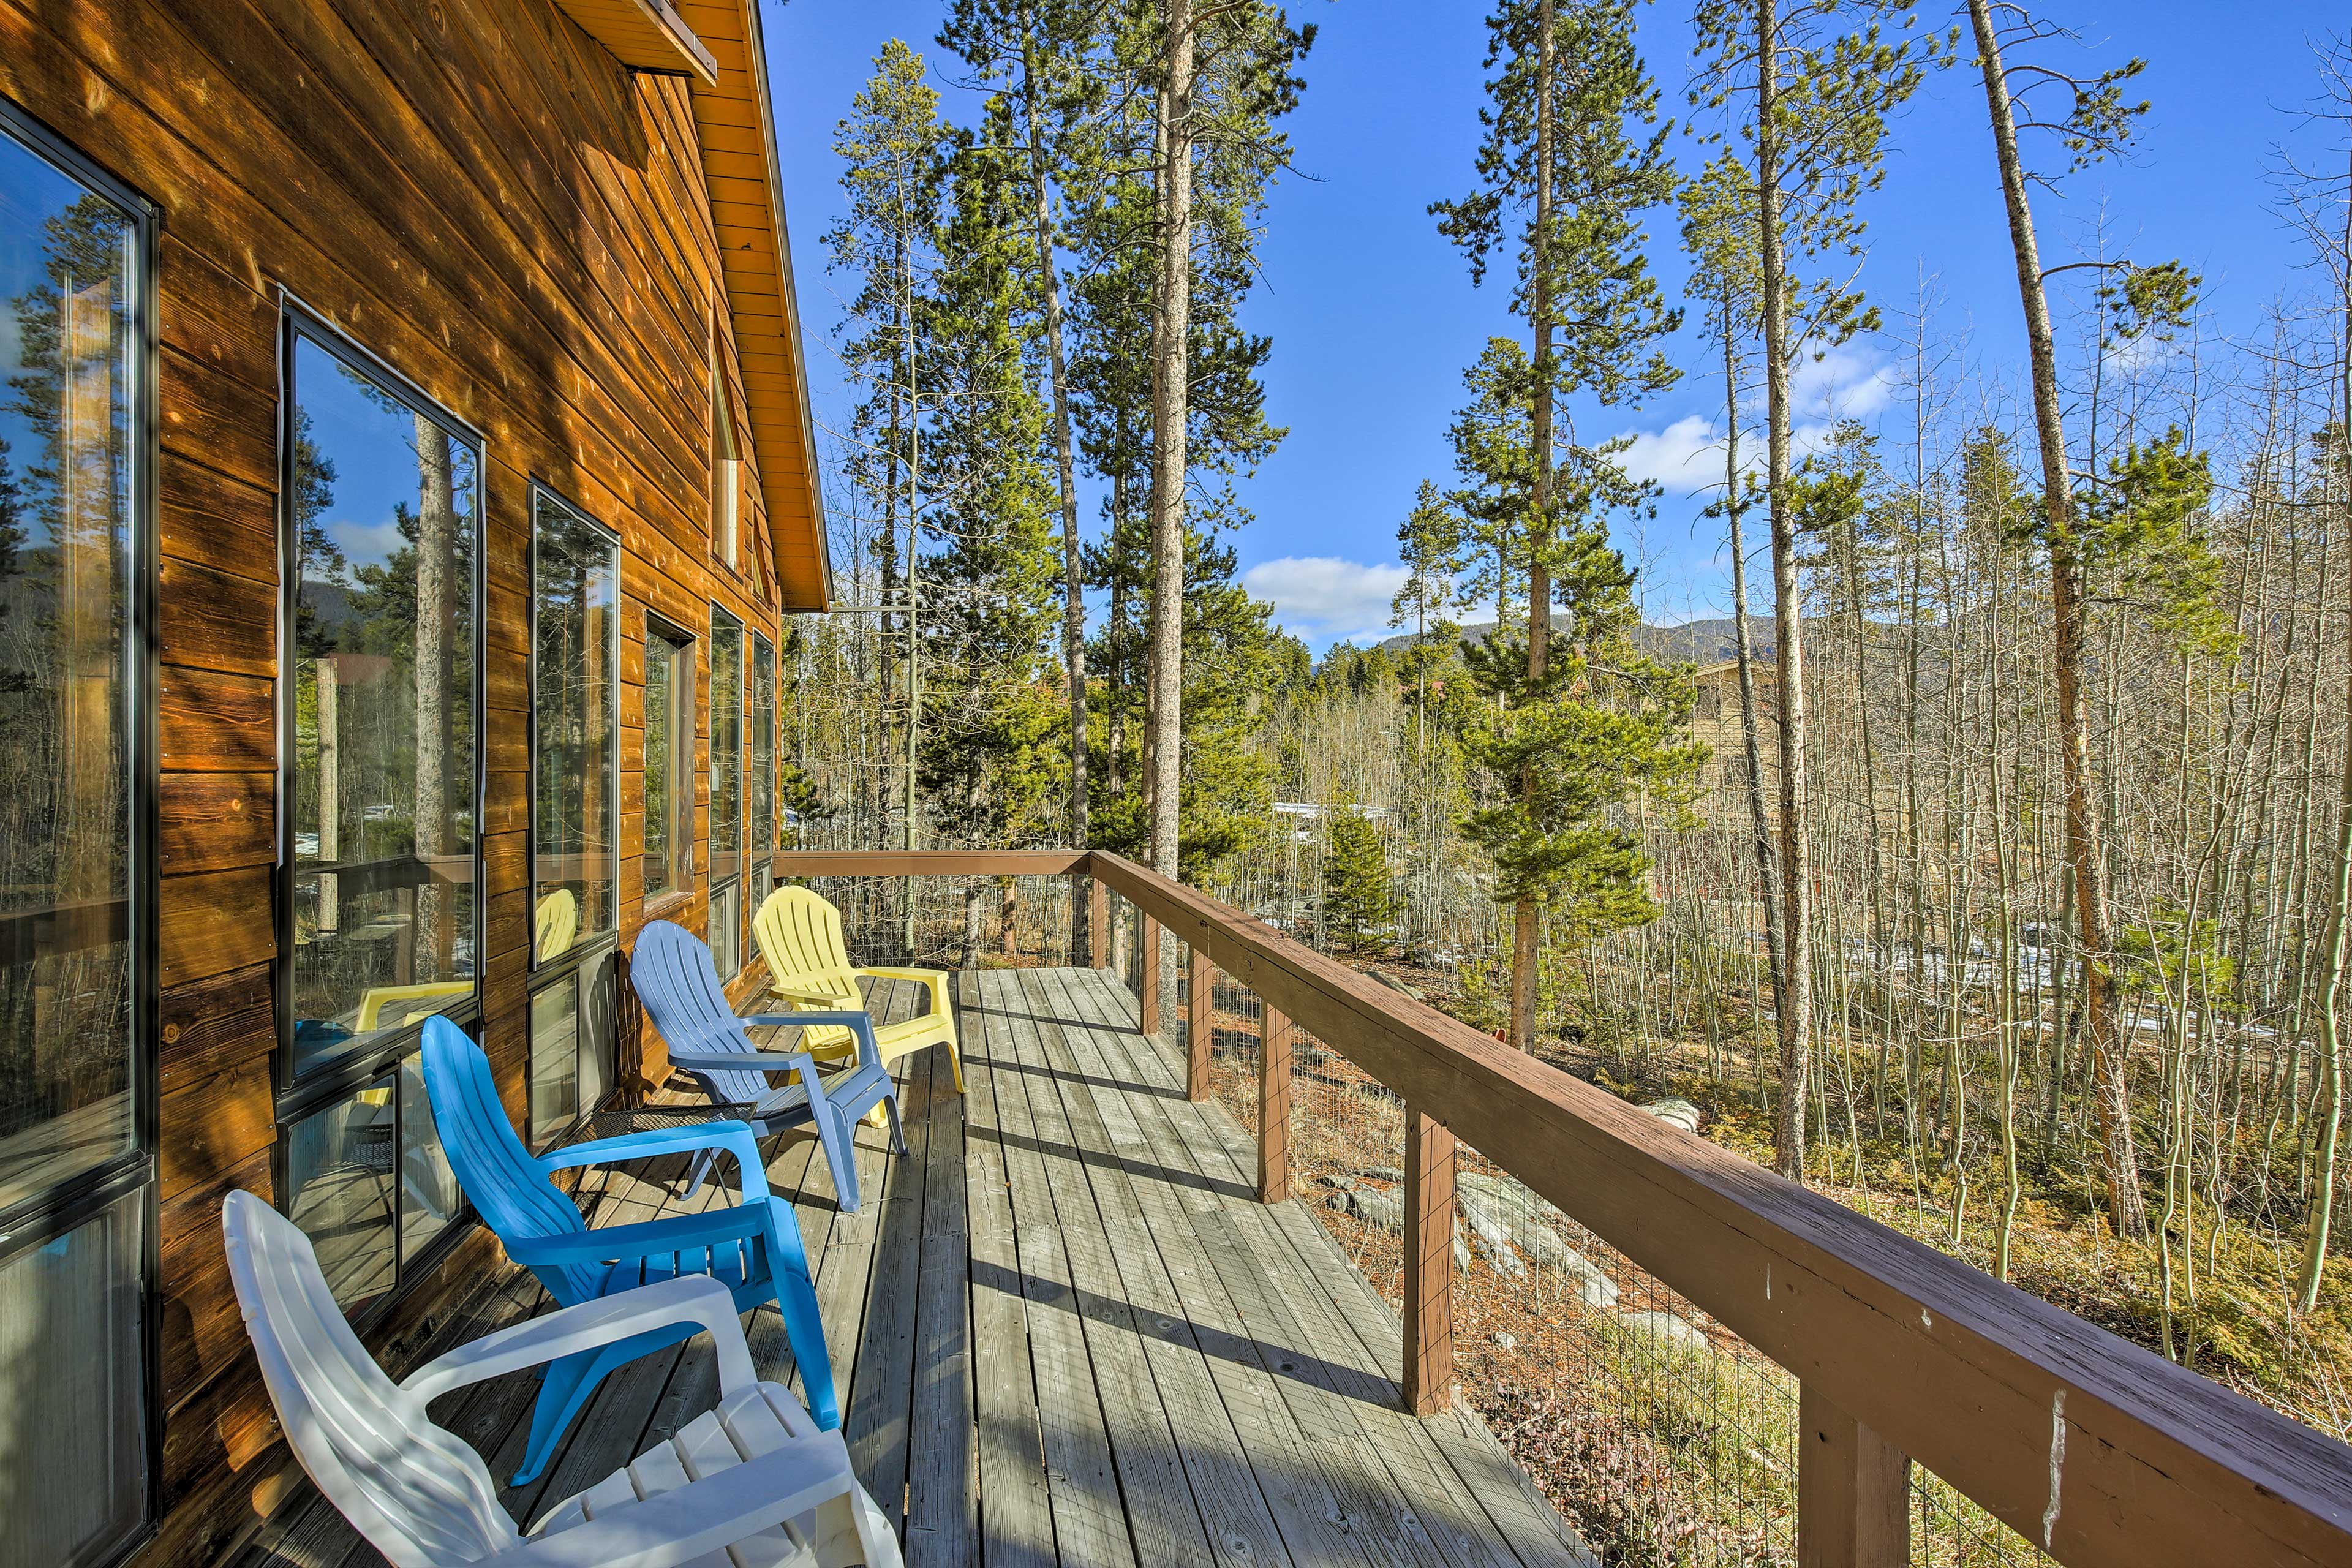 Discover your Grand Lake home base at this beautiful vacation rental home!